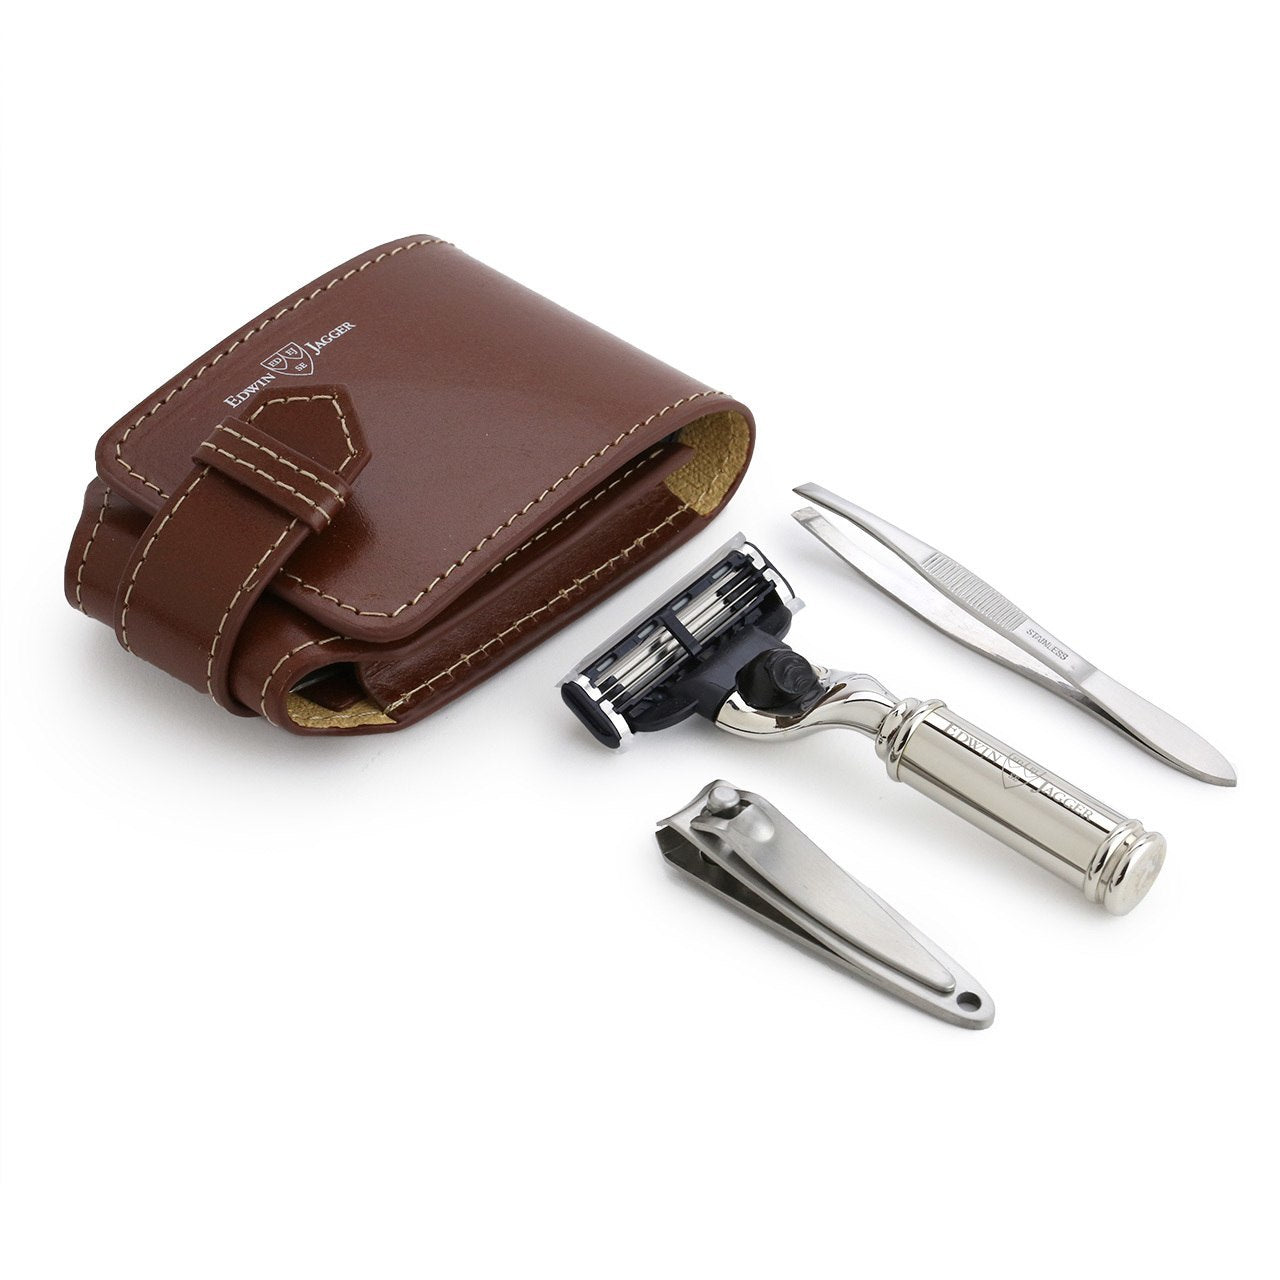 Edwin Jagger Travel set, Mach3 razor, fingernail clippers and tweezers in a brown leather case